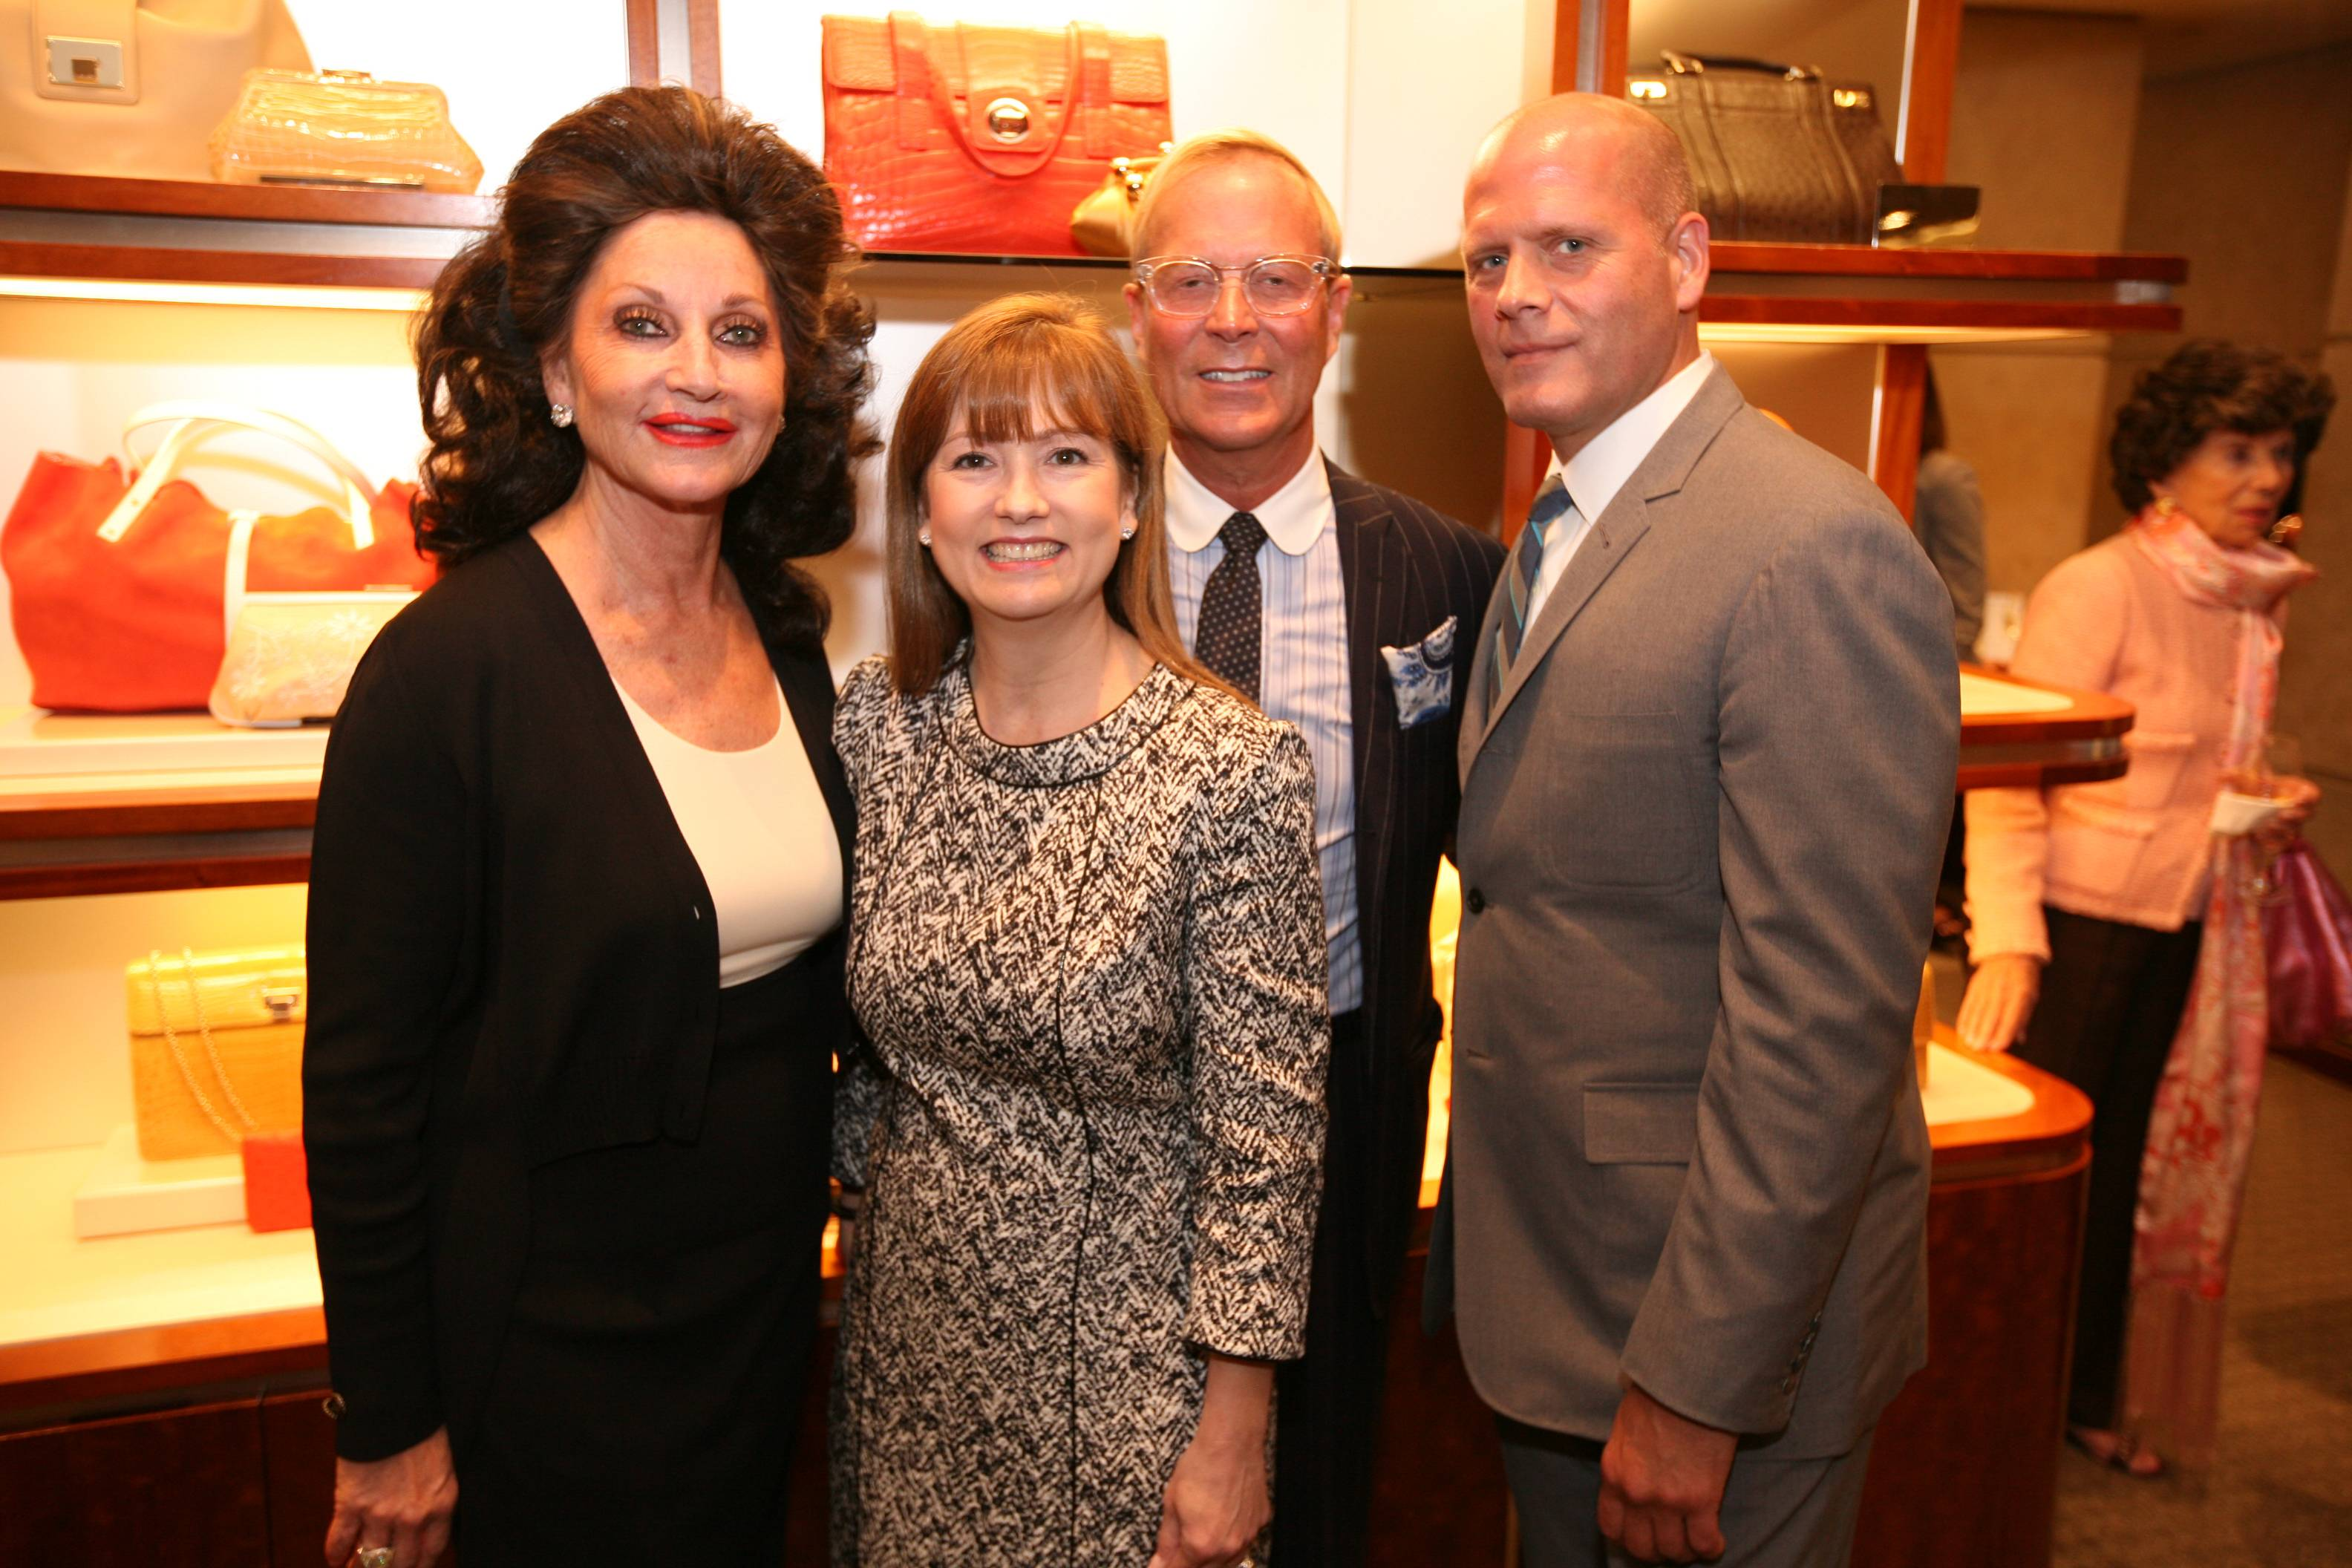 Christine Lynn, Debra Koch,Richard Lambertson, JohnTruex